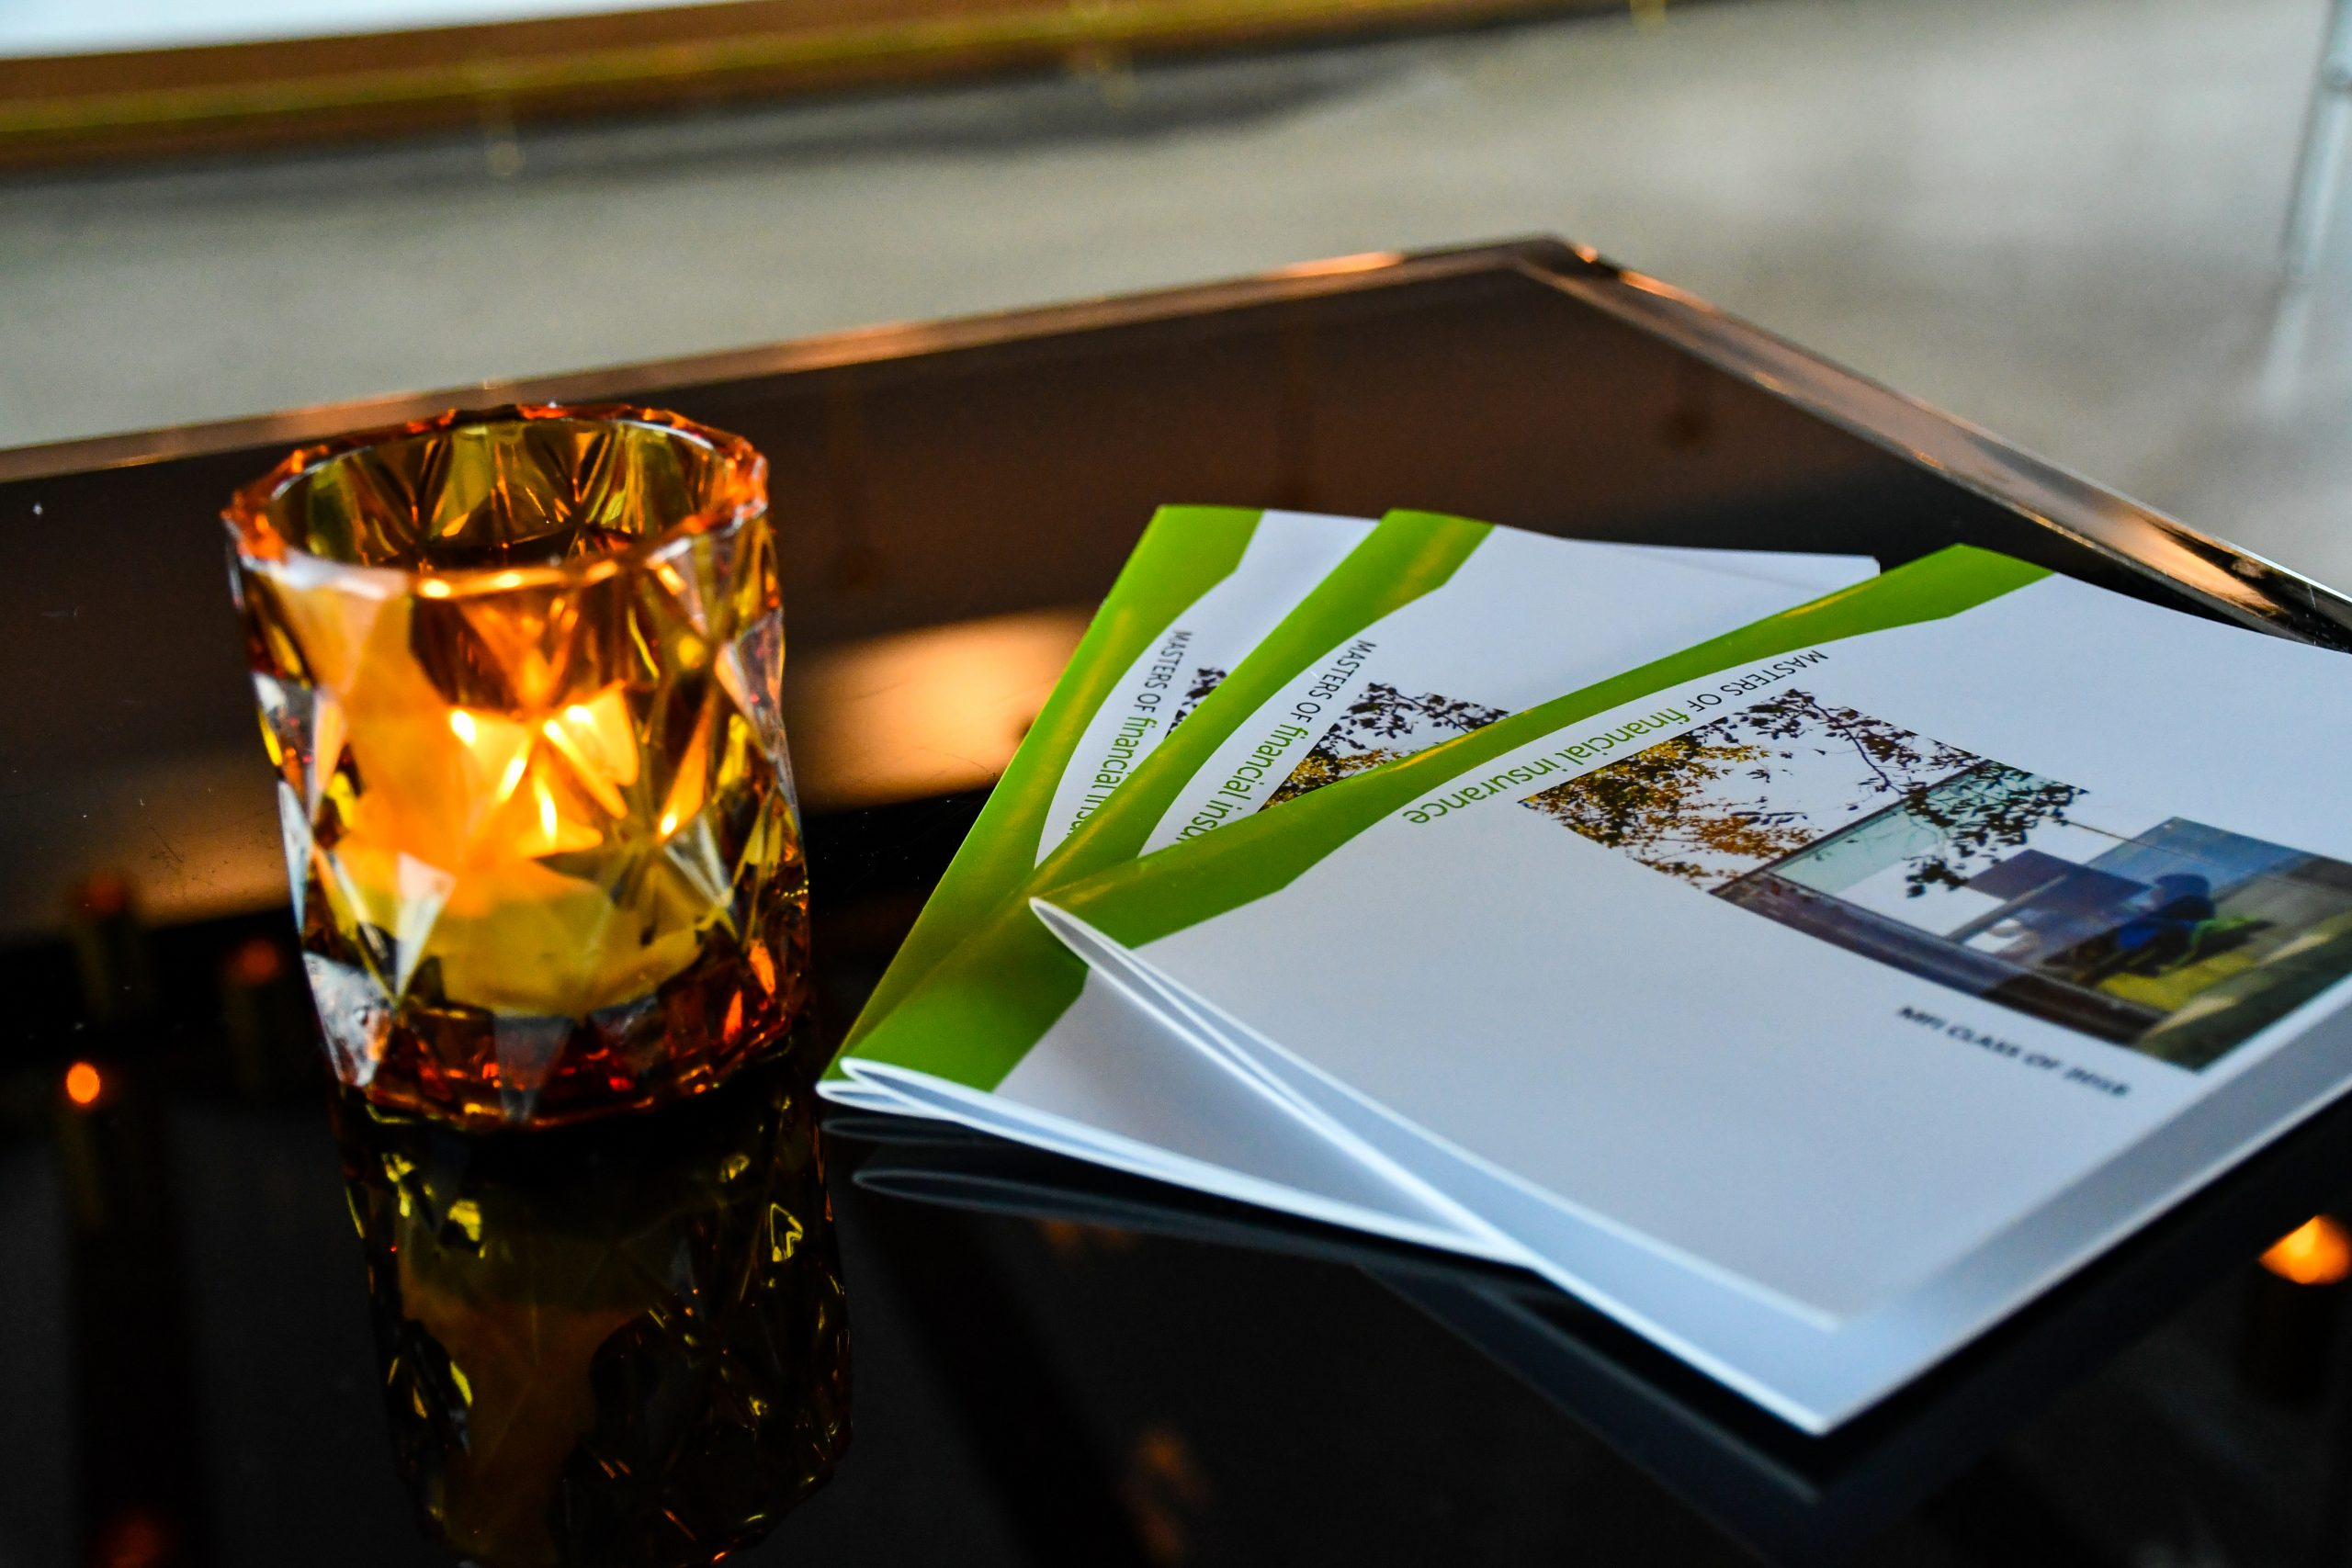 Lighted tea light with white and green booklets on a table